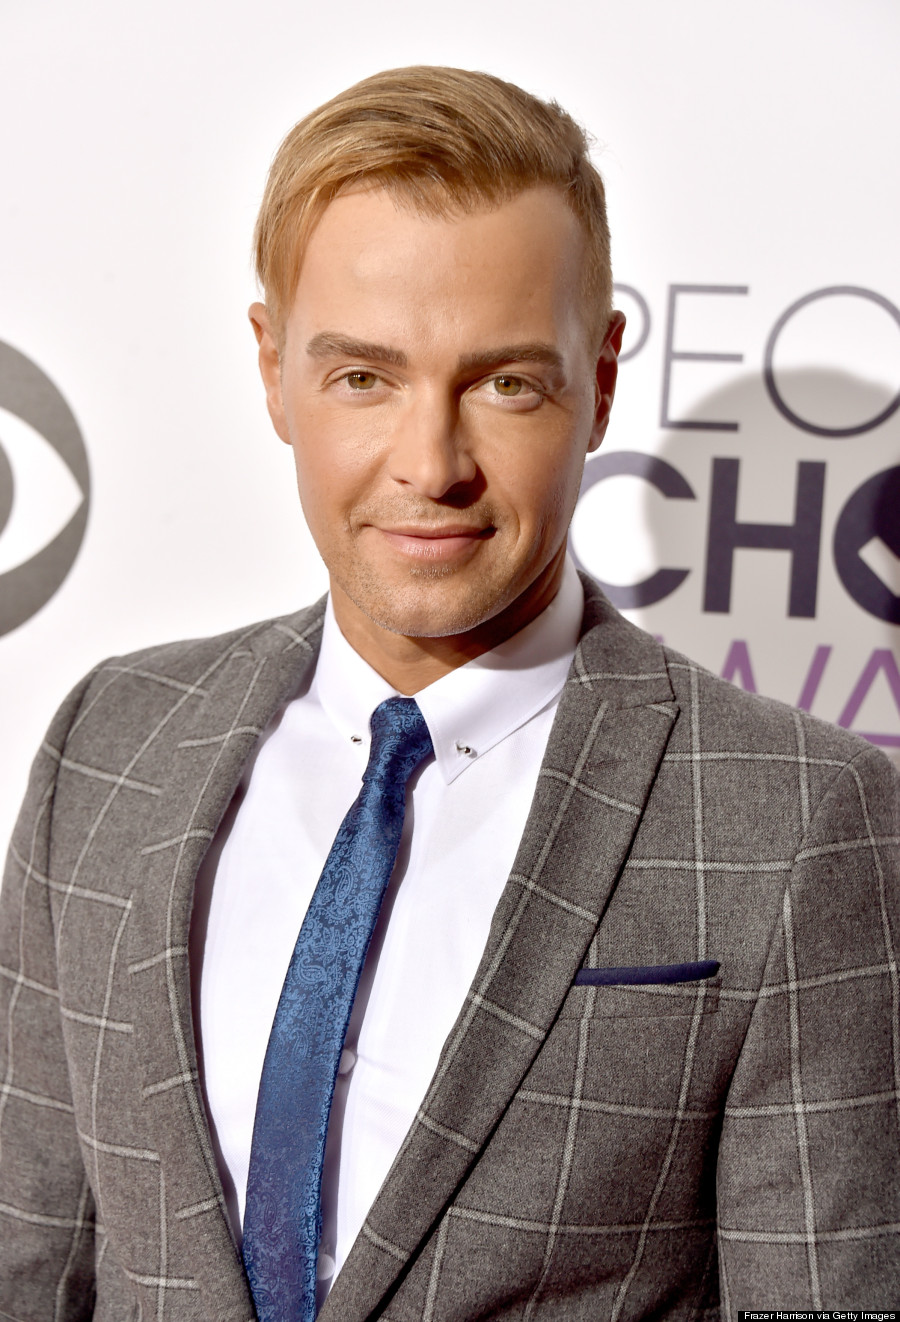 joey lawrence sports a blond comb-over at people's choice awards